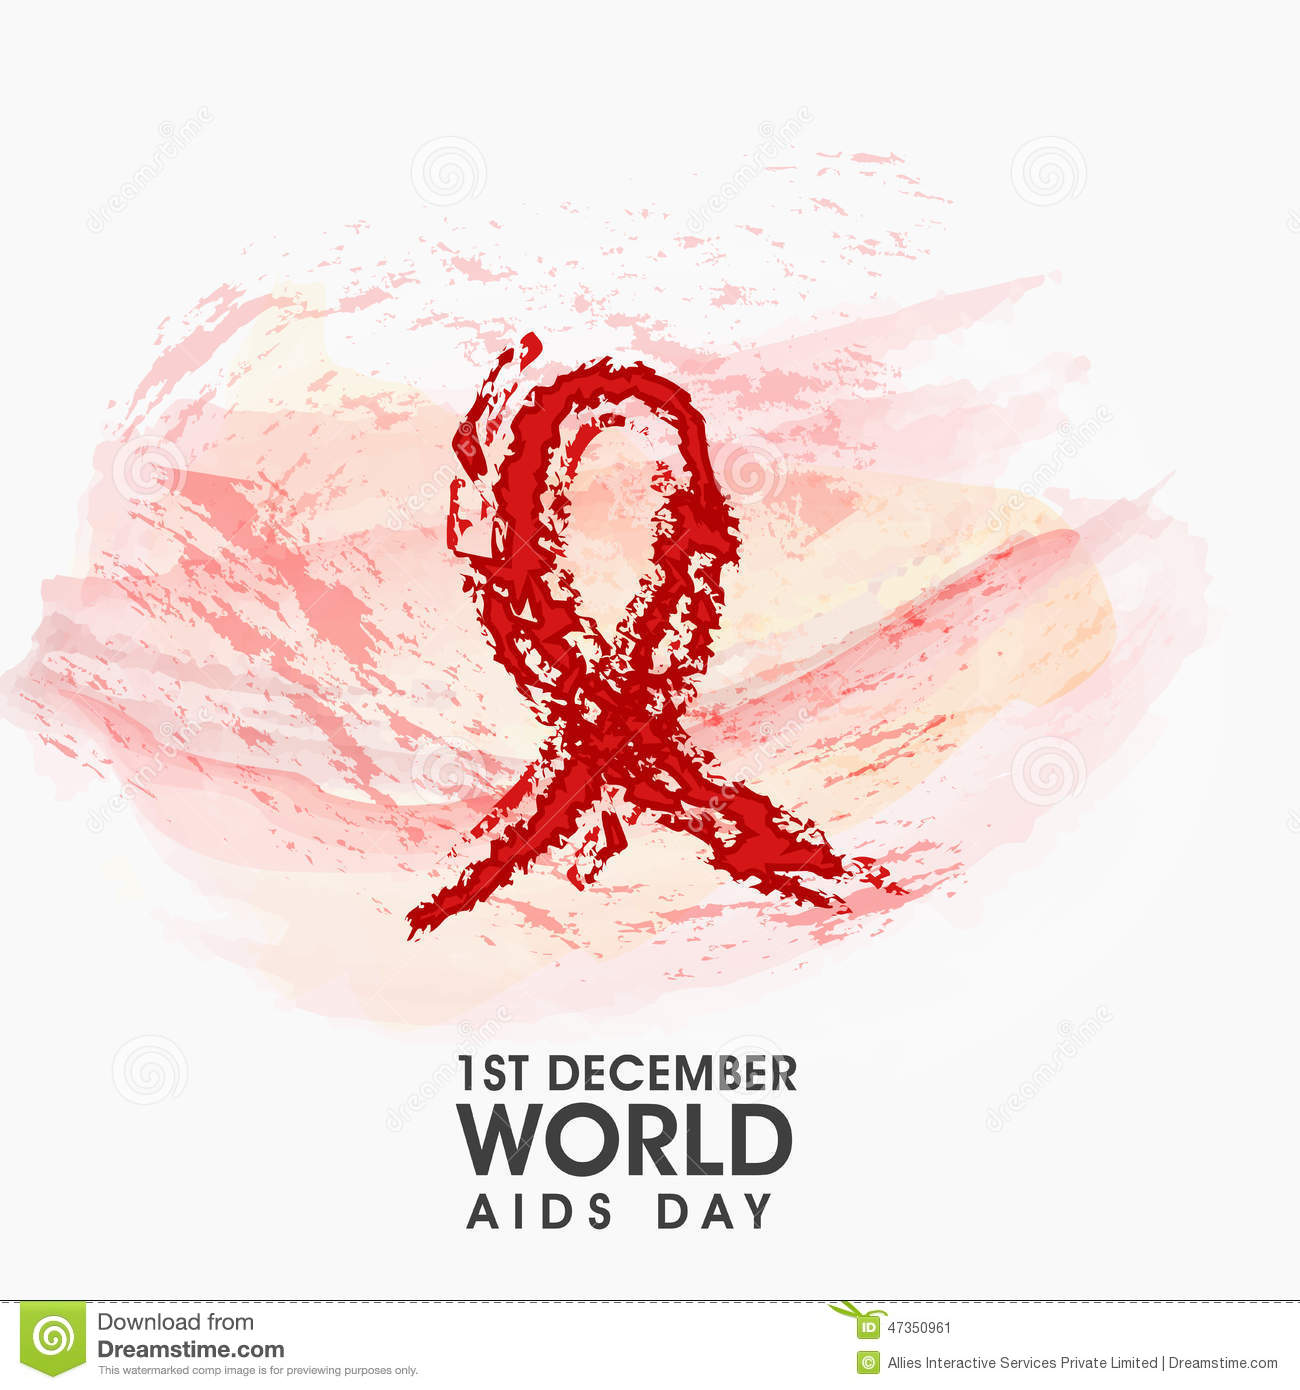 world aids day backgrounds - photo #41